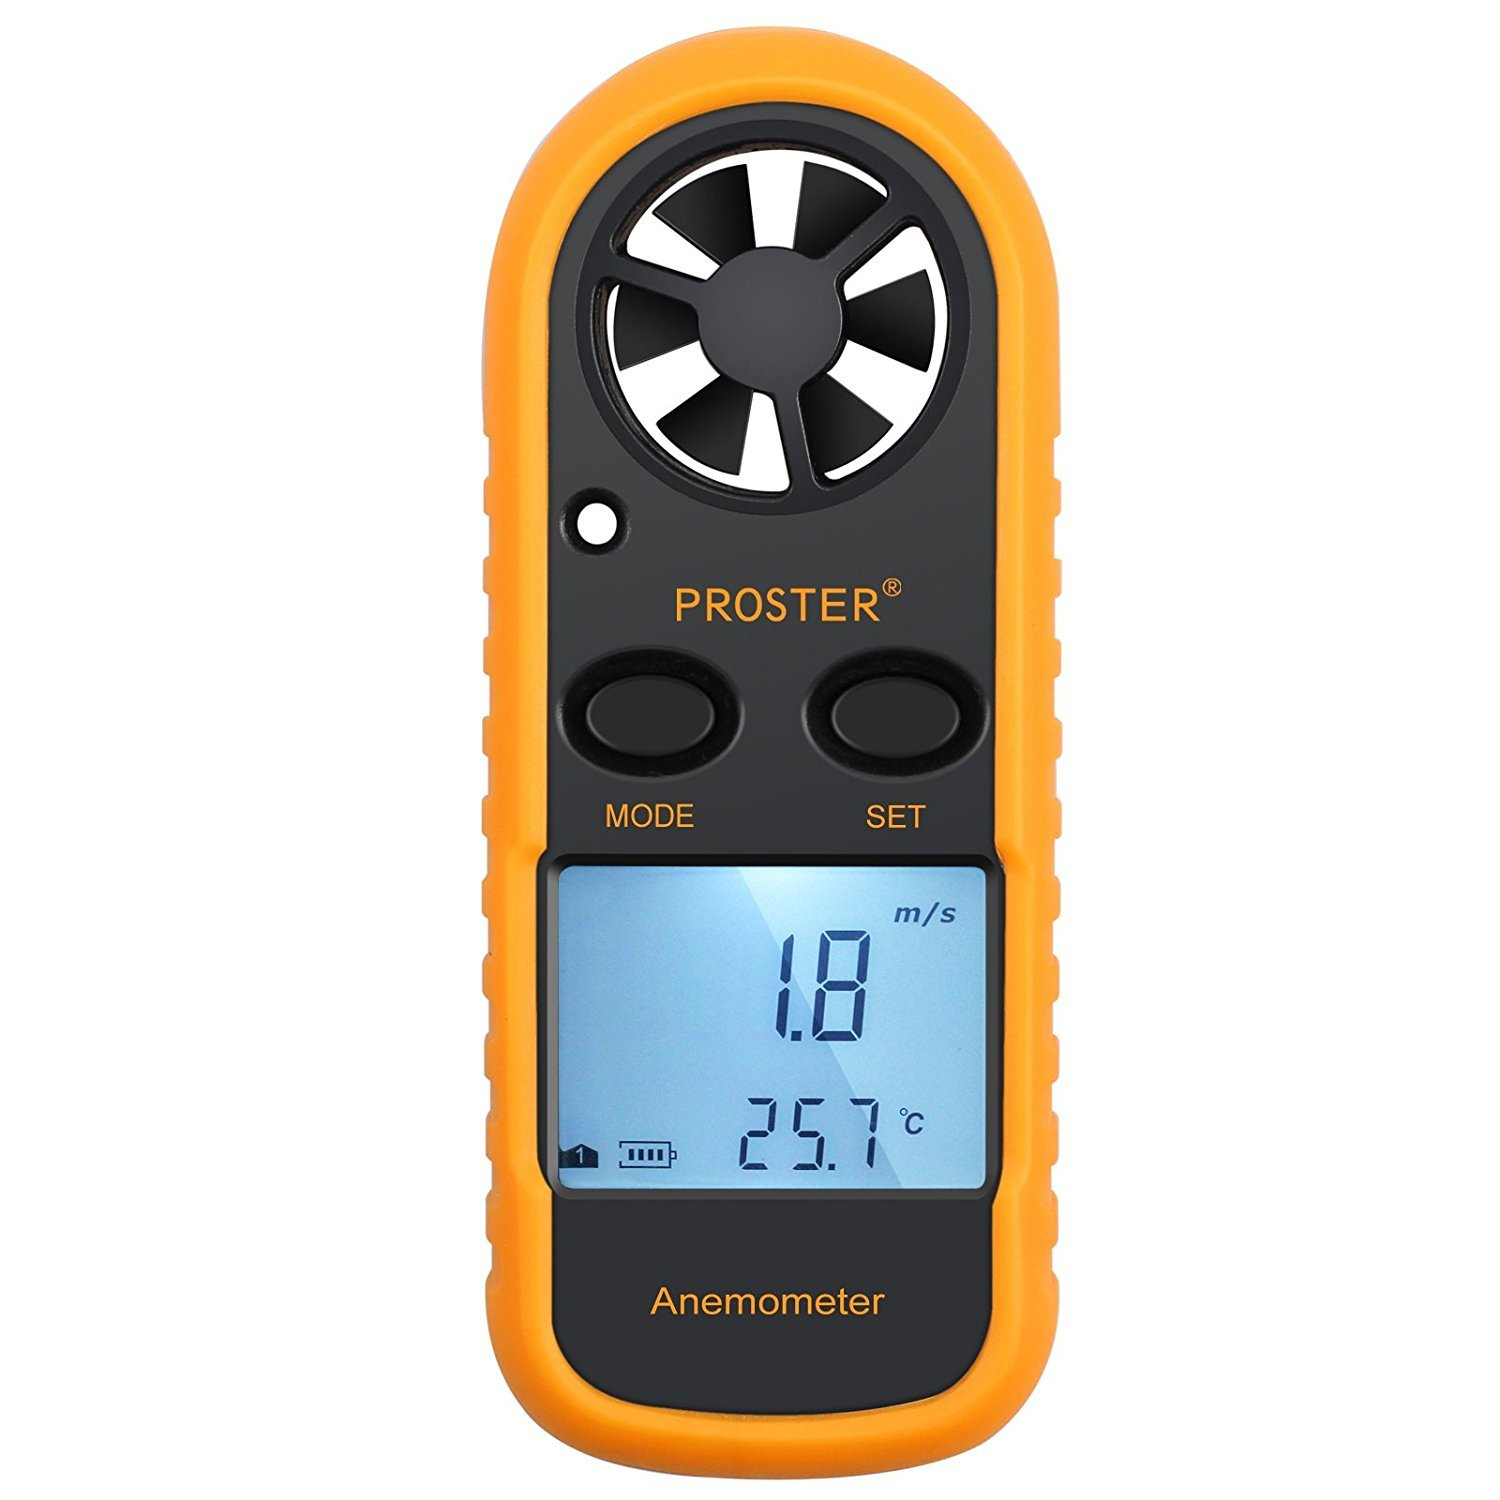 Proster Handheld Anemometer Wind Speed Meter Thermomoter Wind Detector Gauge Airflow Meter for Outdoor Sailing Surfing Shooting Fishing Hunting